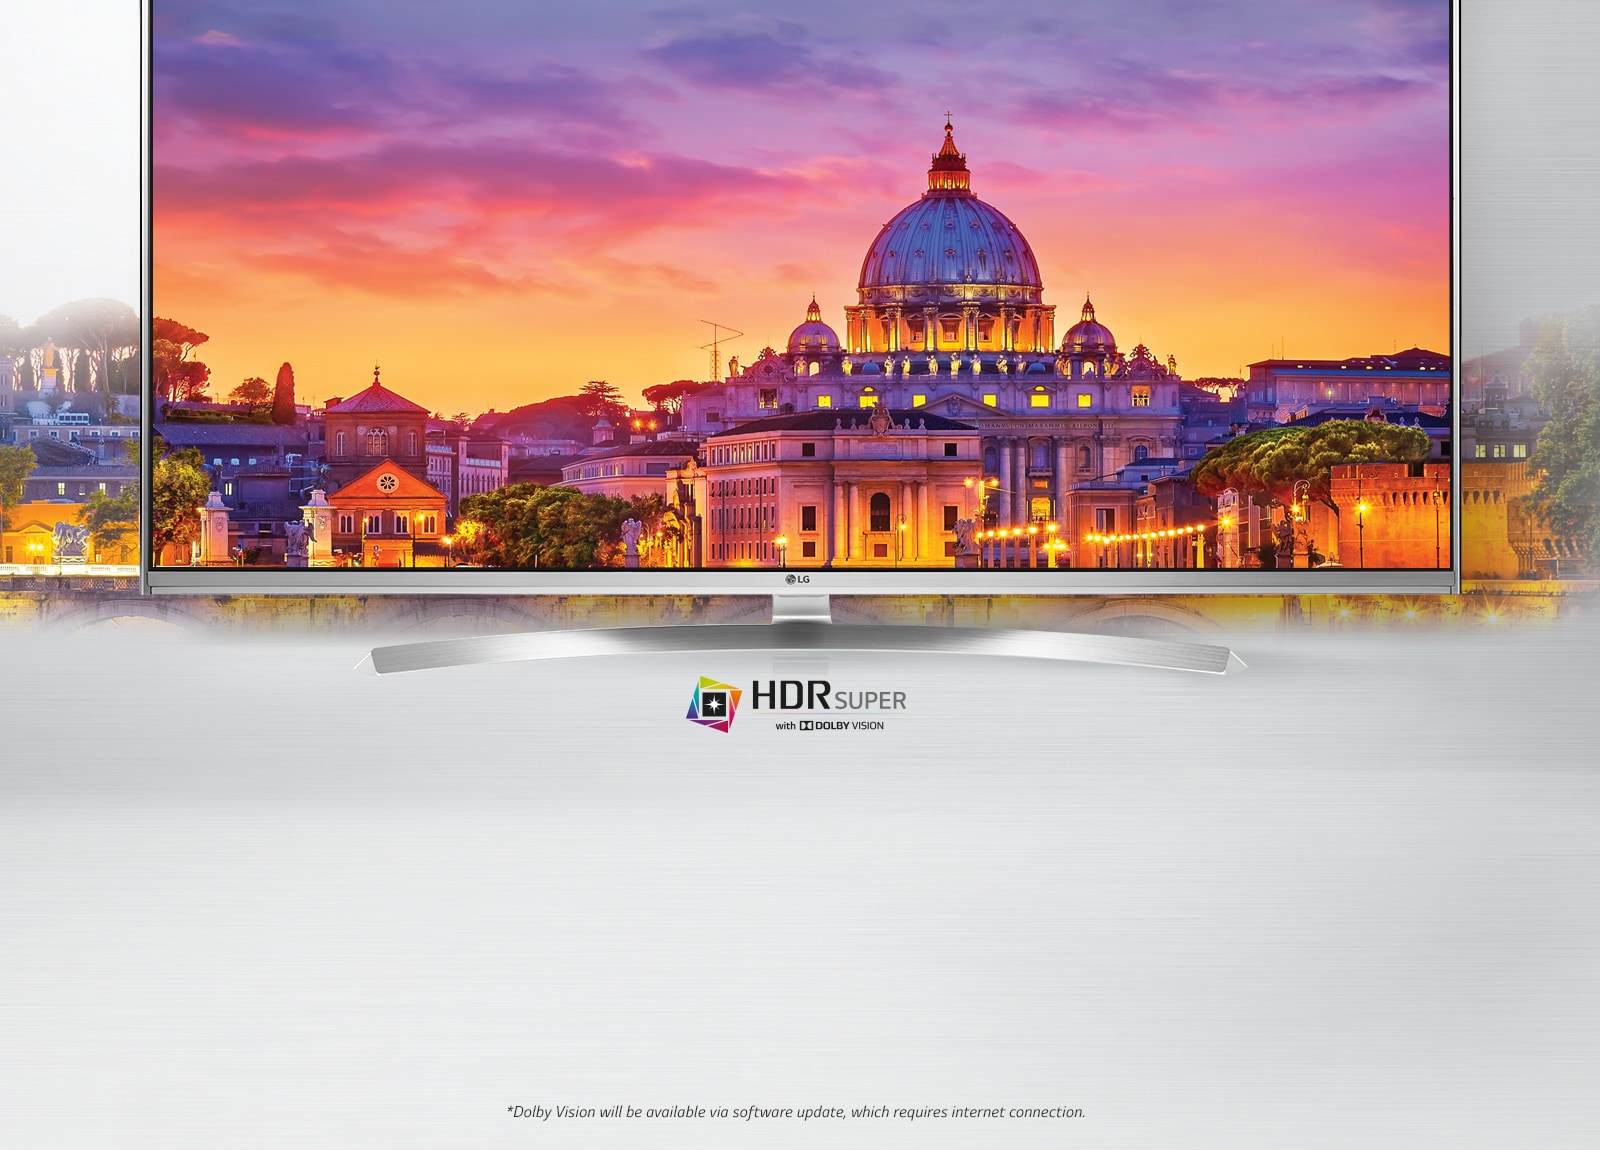 HDR SUPER with Dolby Vision